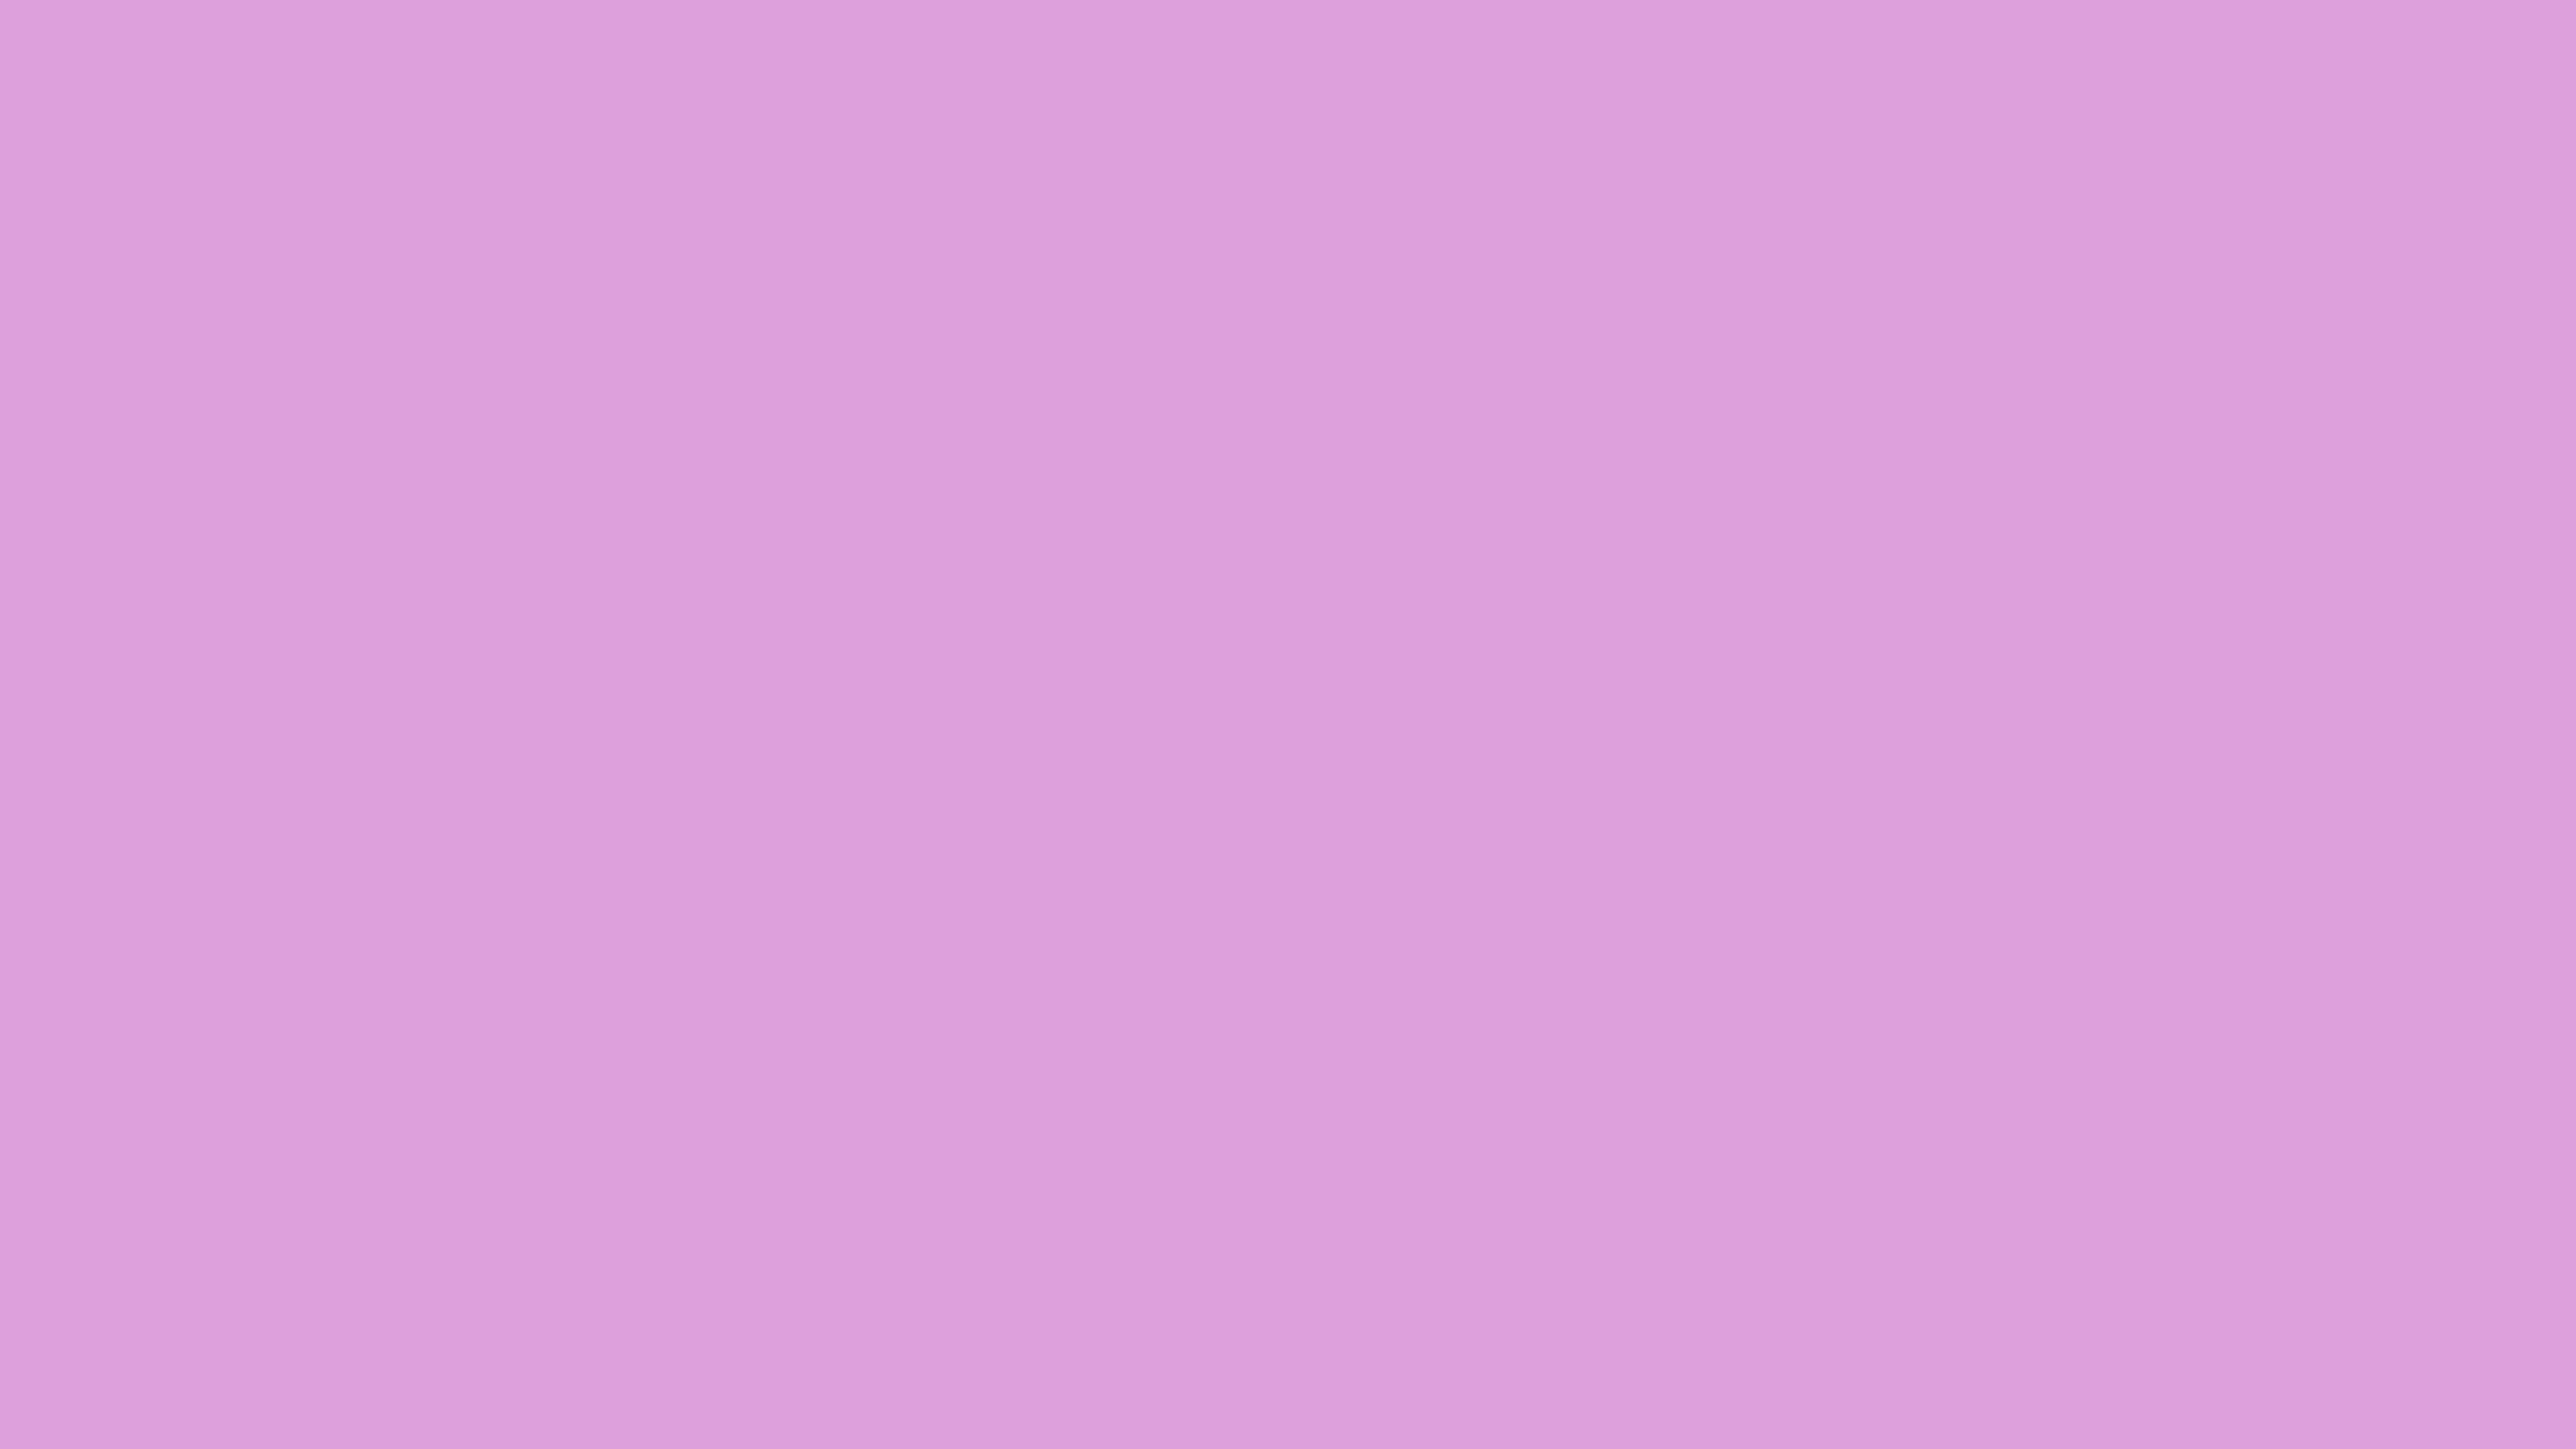 3840x2160 Pale Plum Solid Color Background